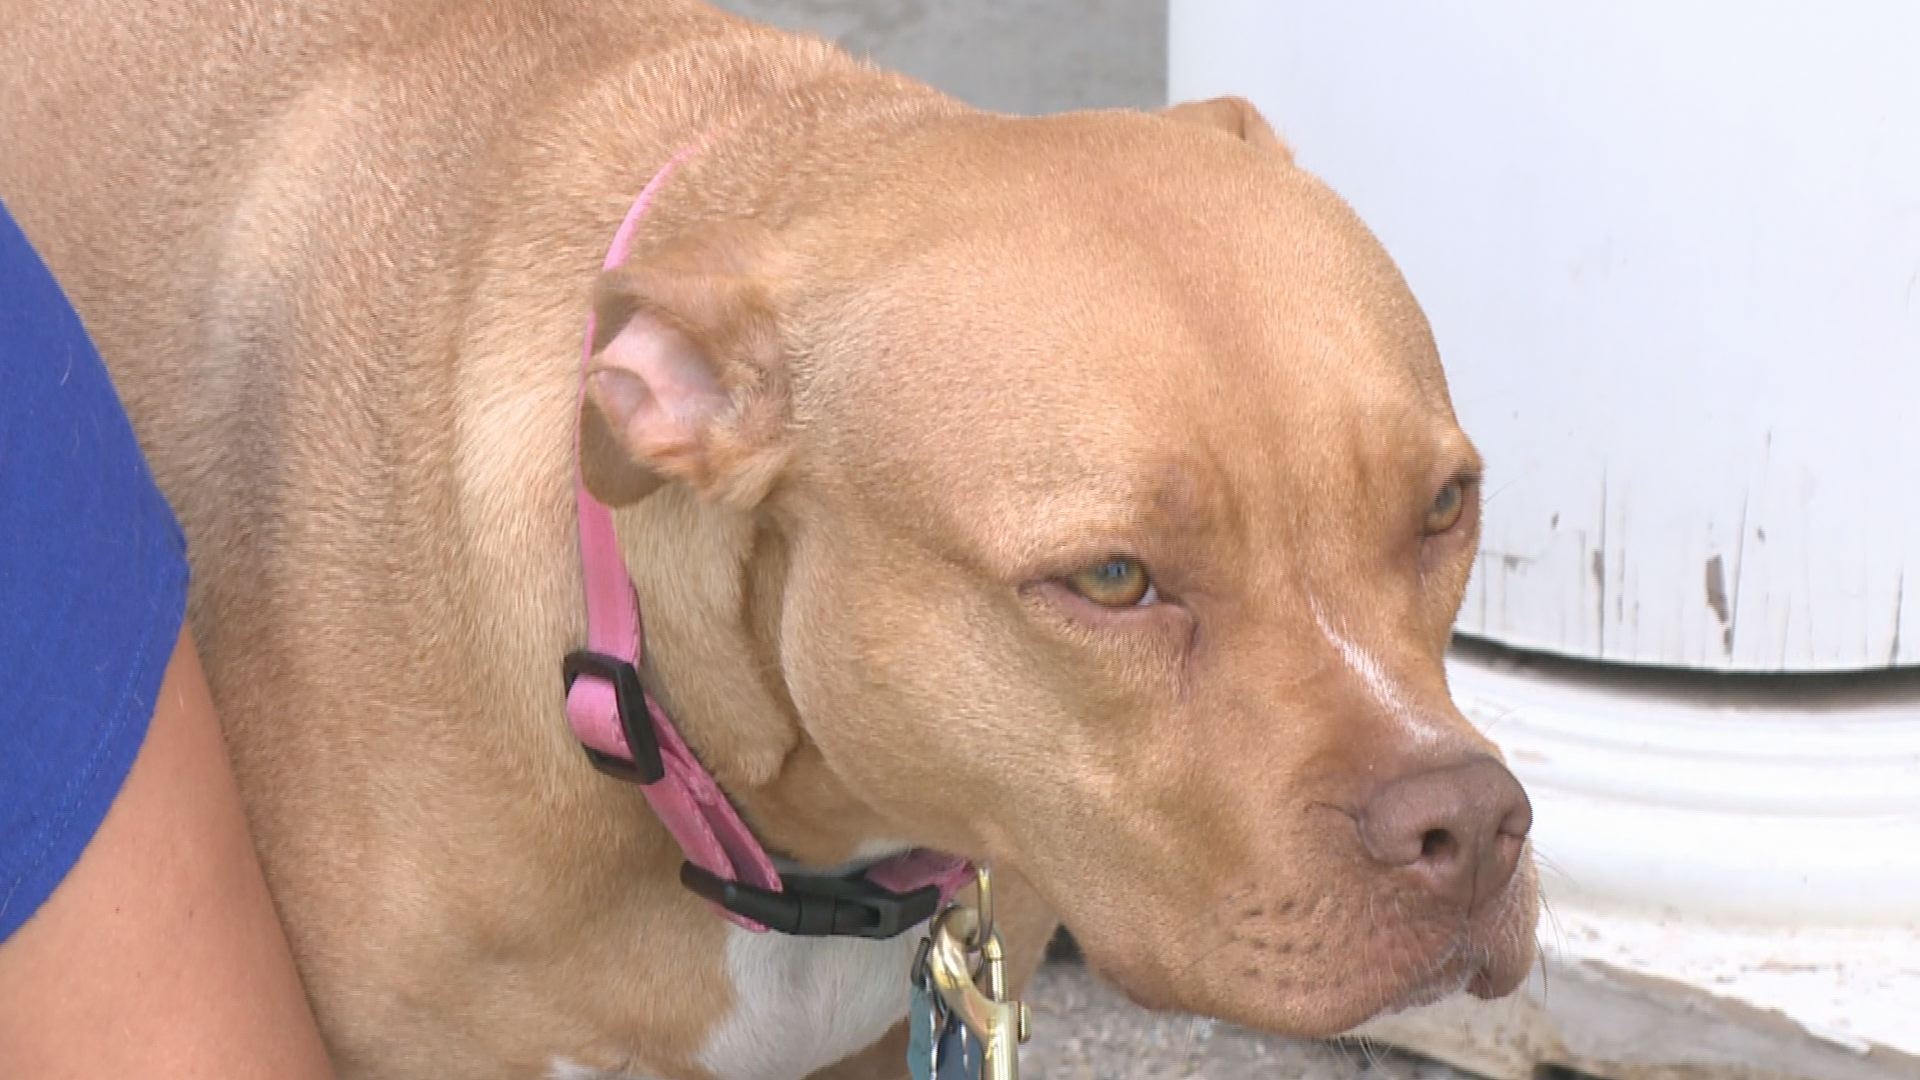 pit bulls dangerous and vicious A new bristol university study confirms what pit bull lovers suspected all along: aggressive behavior has little to do with breed and almost everything to do with the owners.